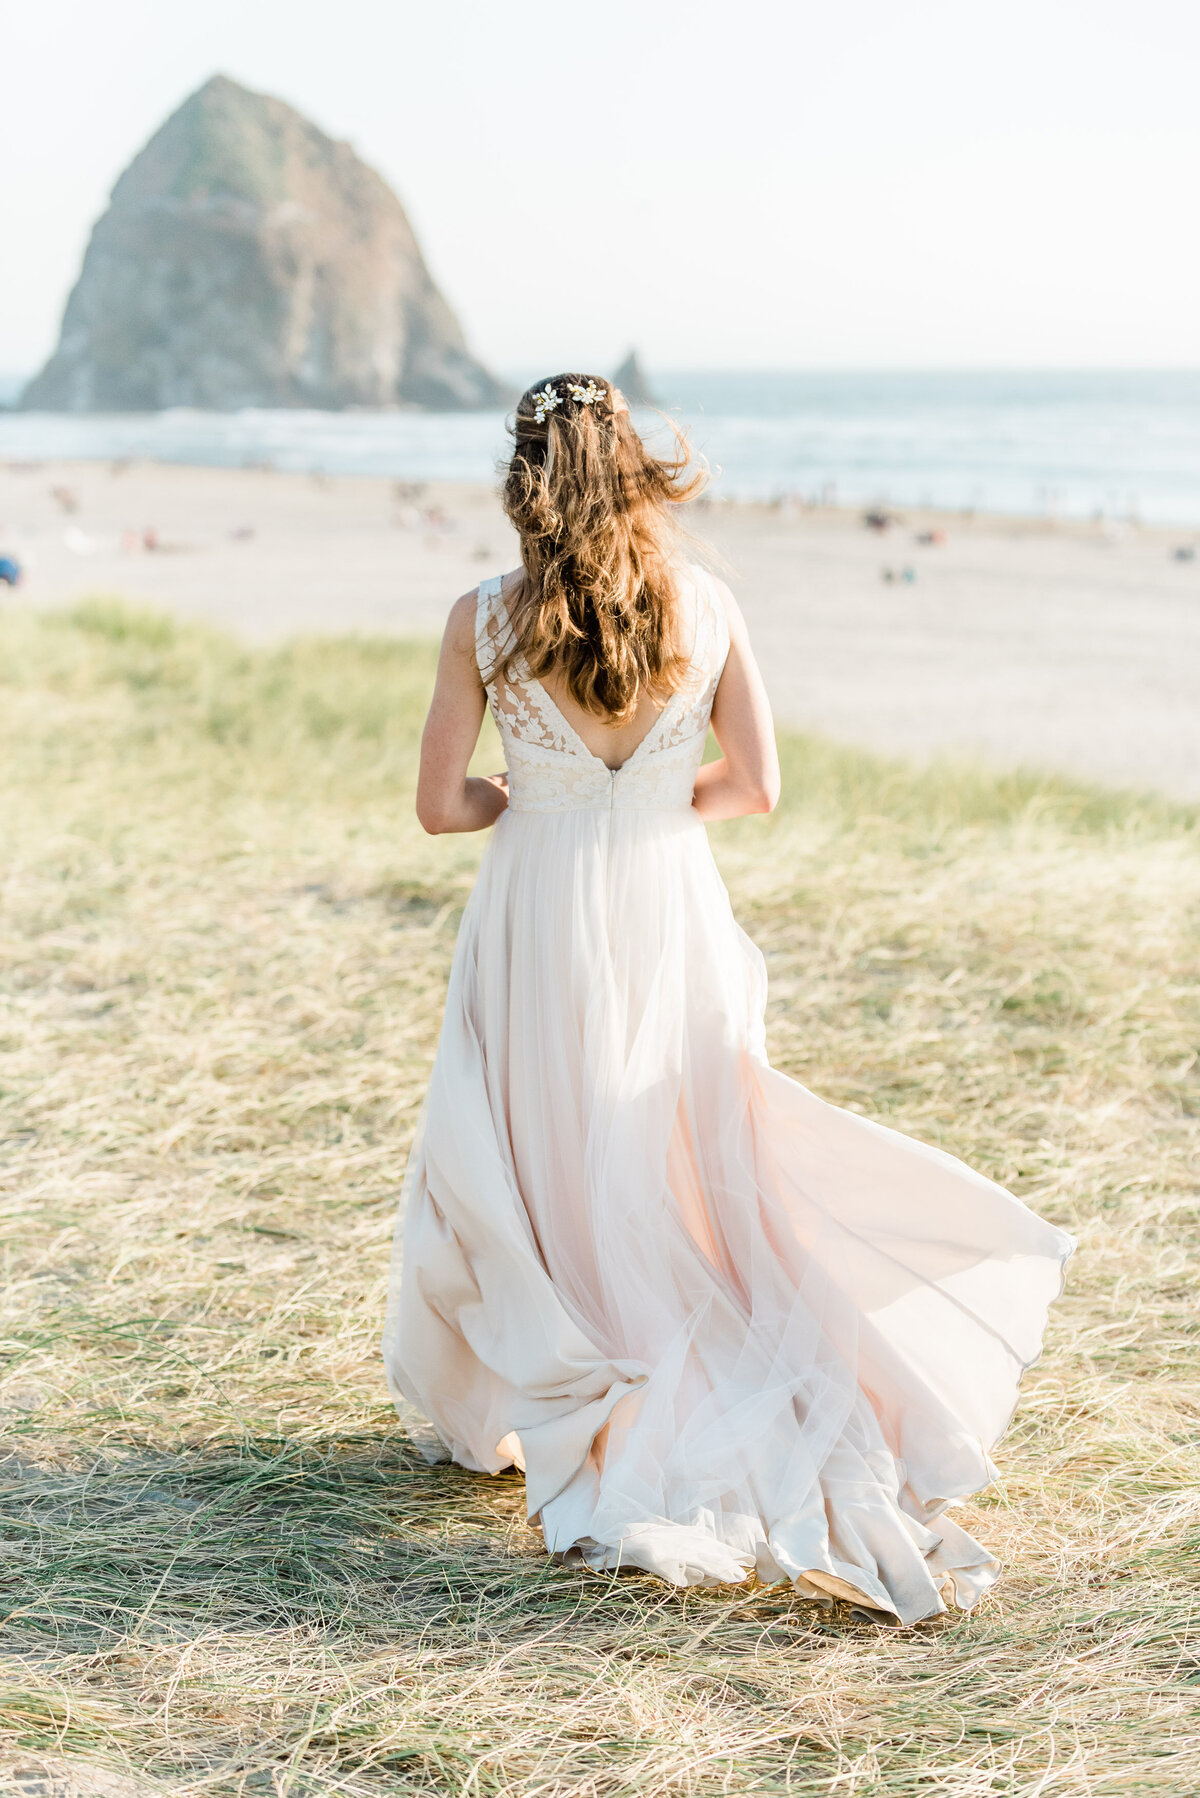 Cannon-Beach-Elopement-Photographer-12